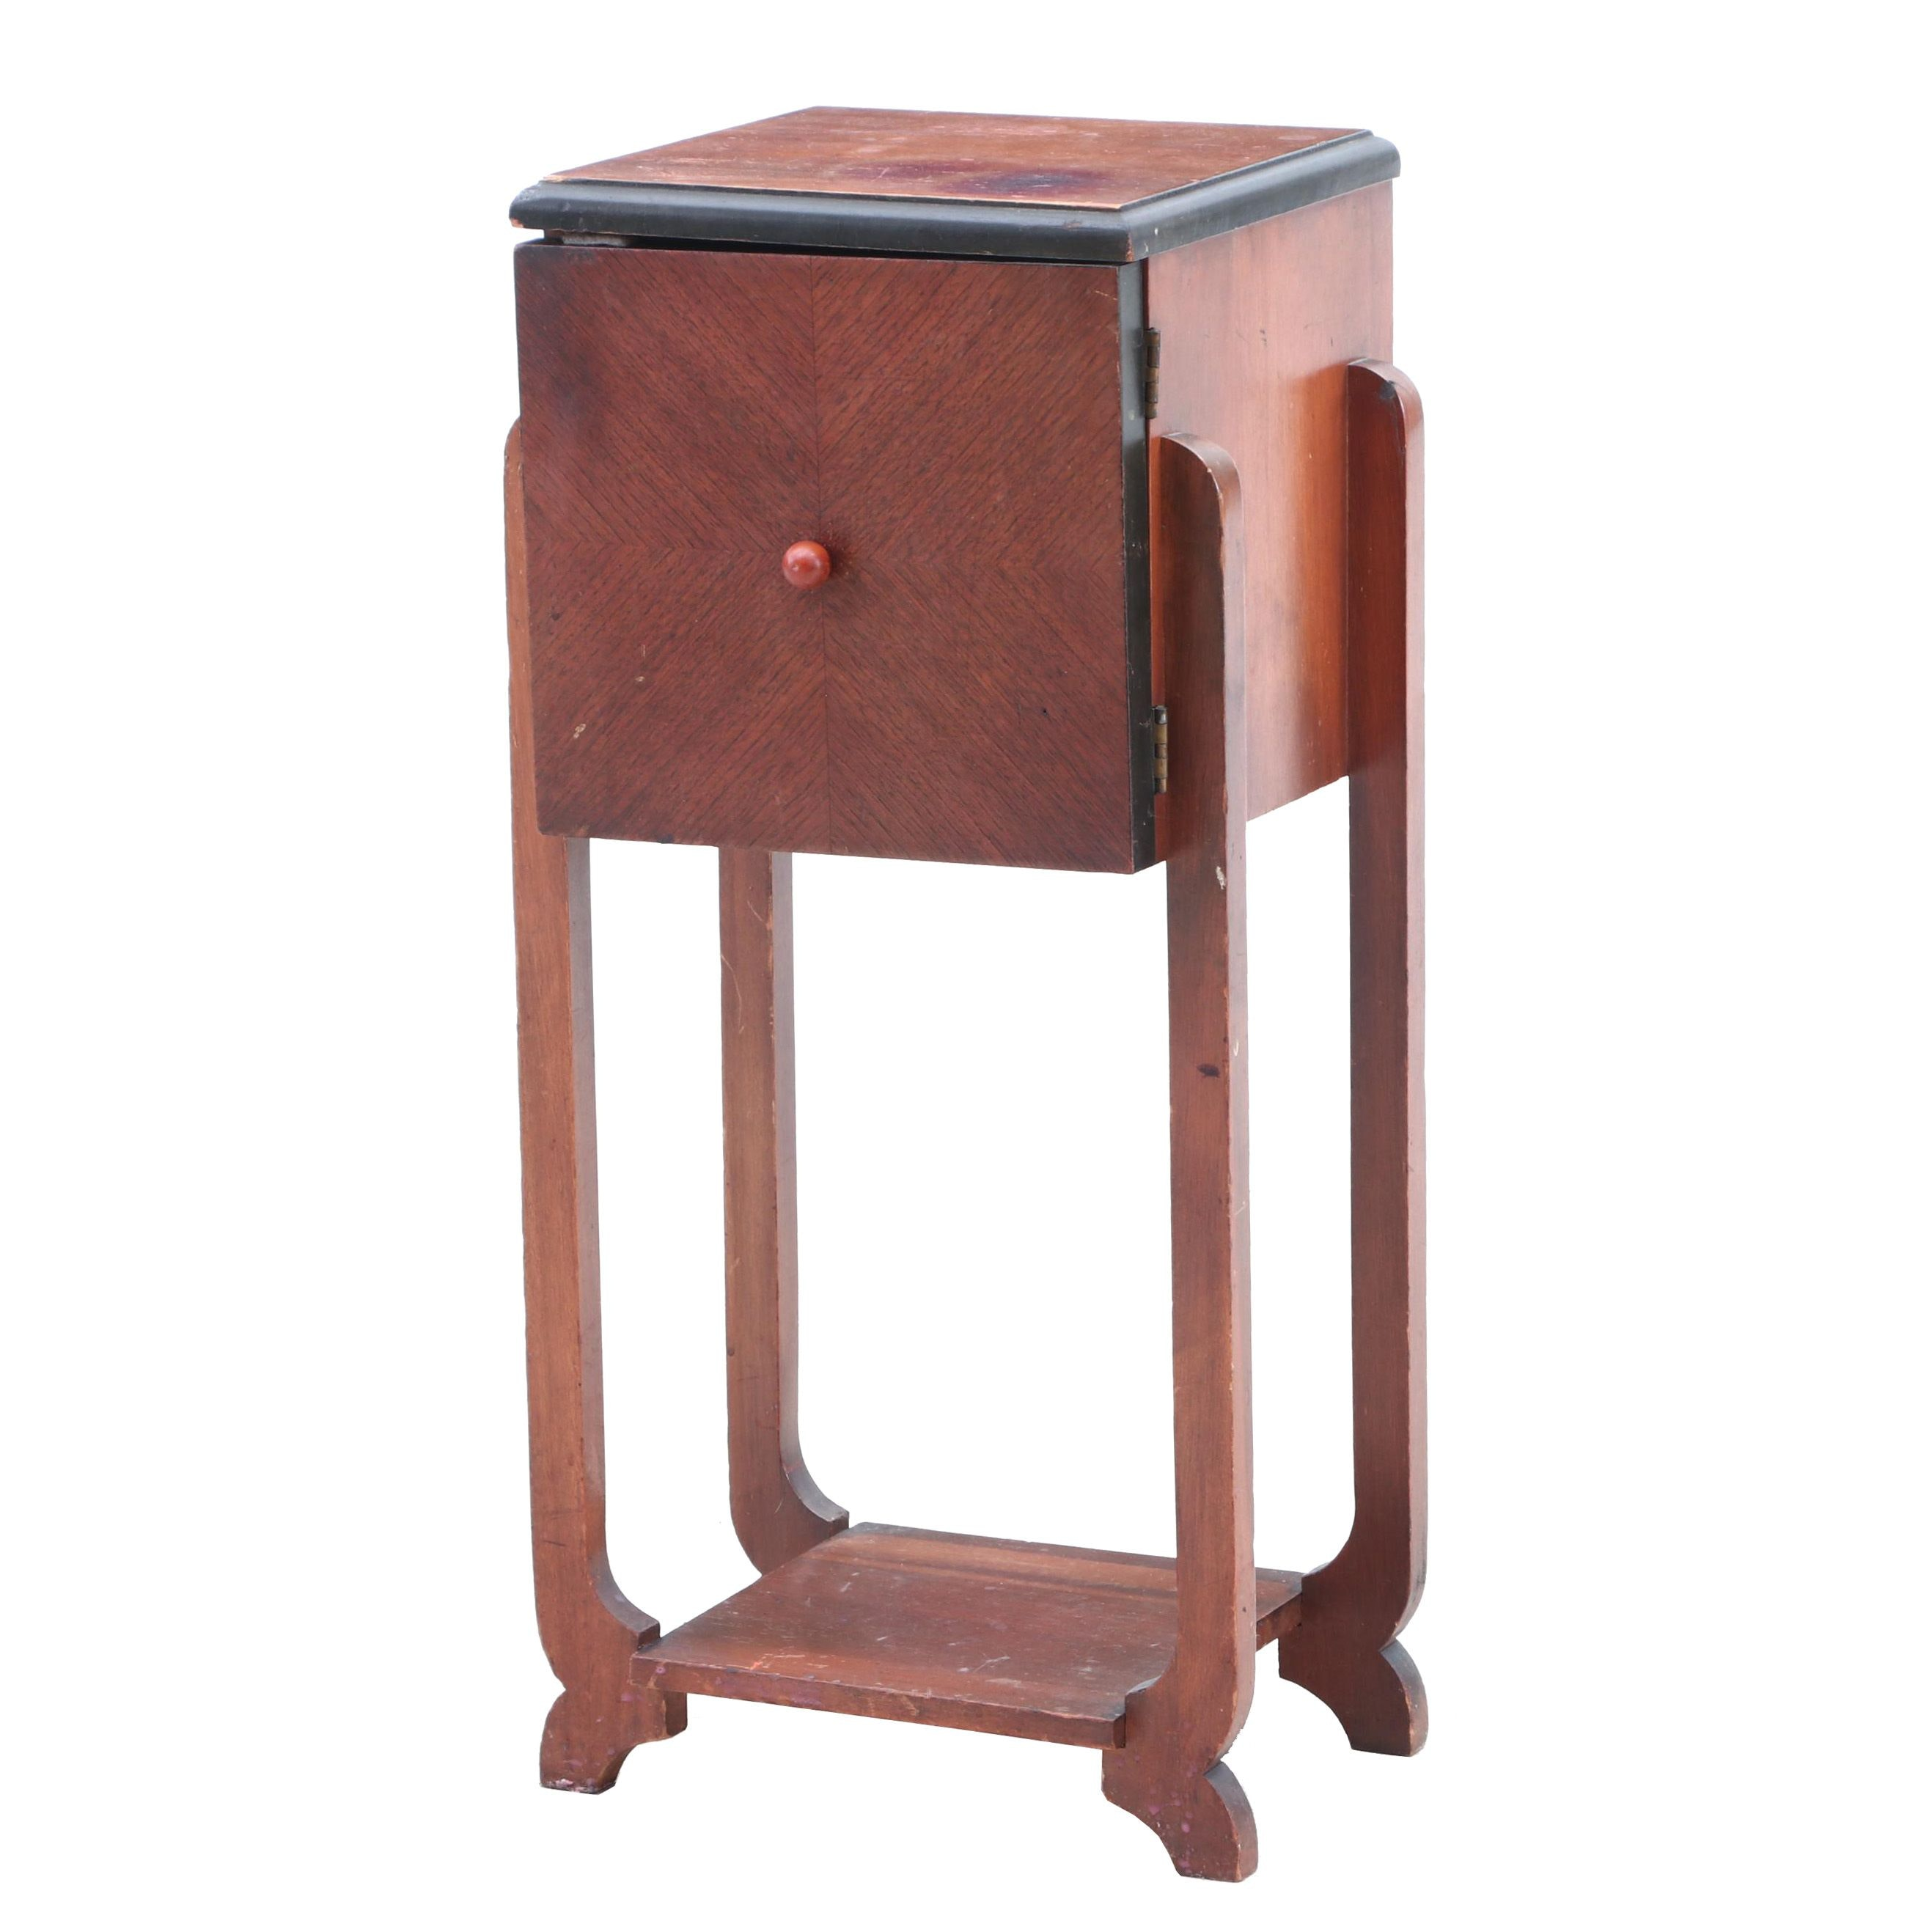 Bookmatched Veneer and Copper Lined Footed Cabinet